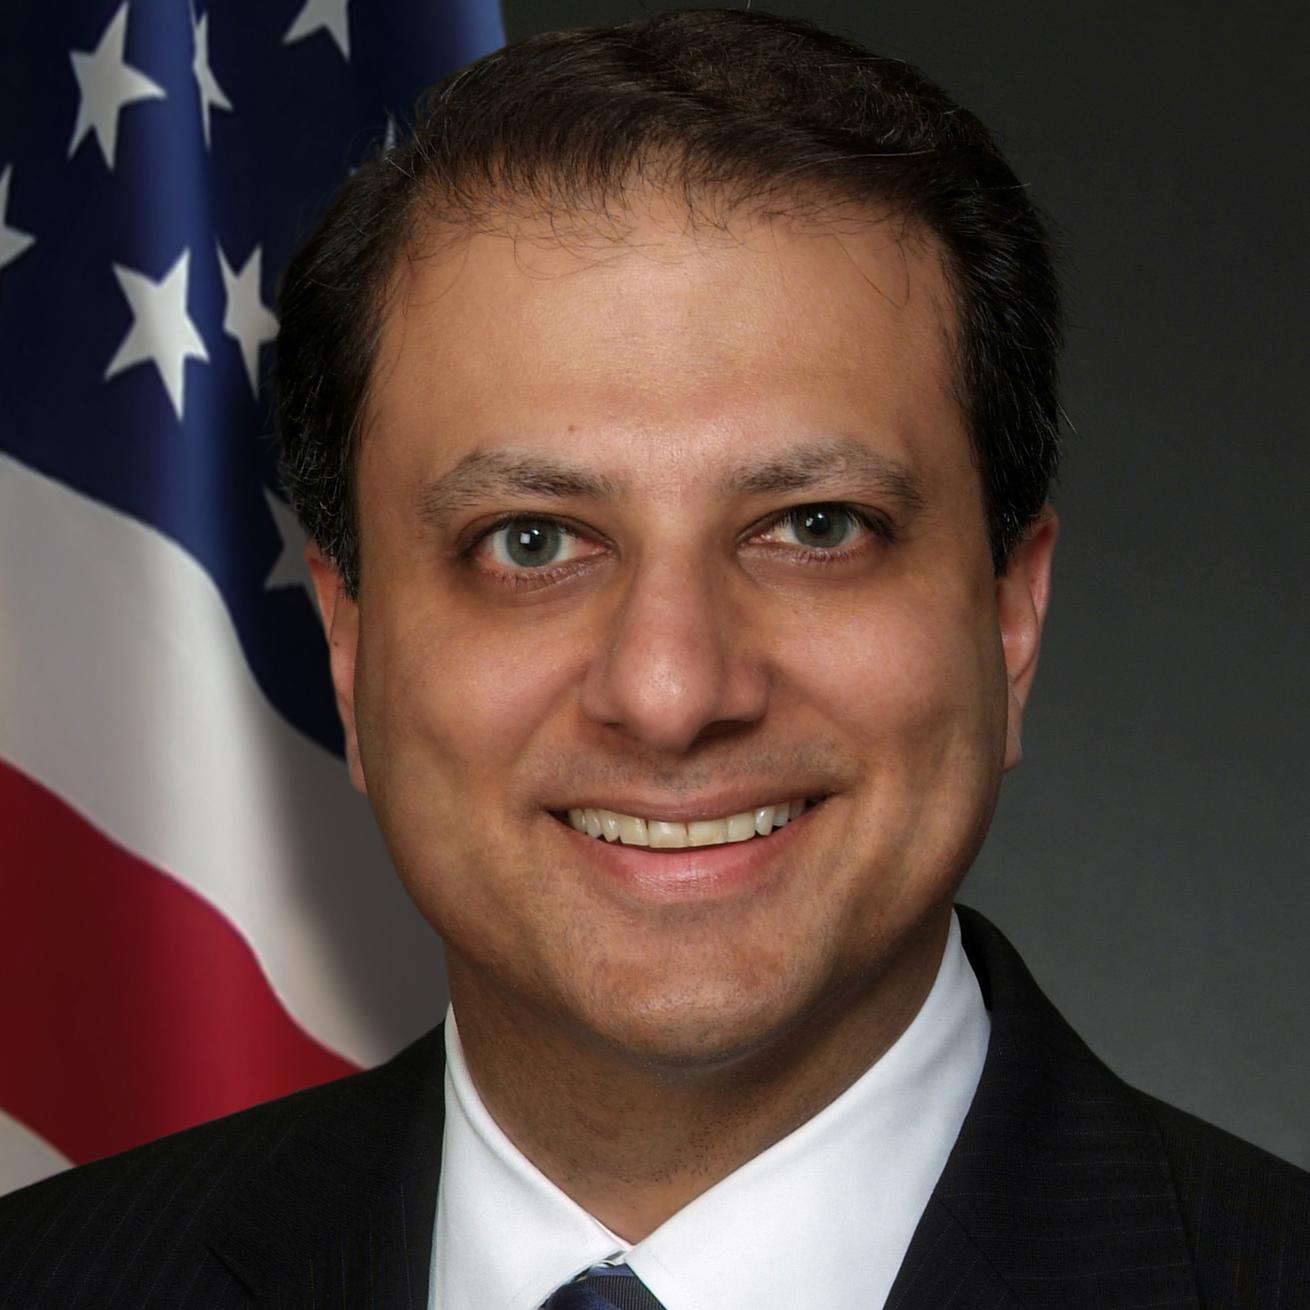 Preet Bharara Bio, Net Worth, Facts